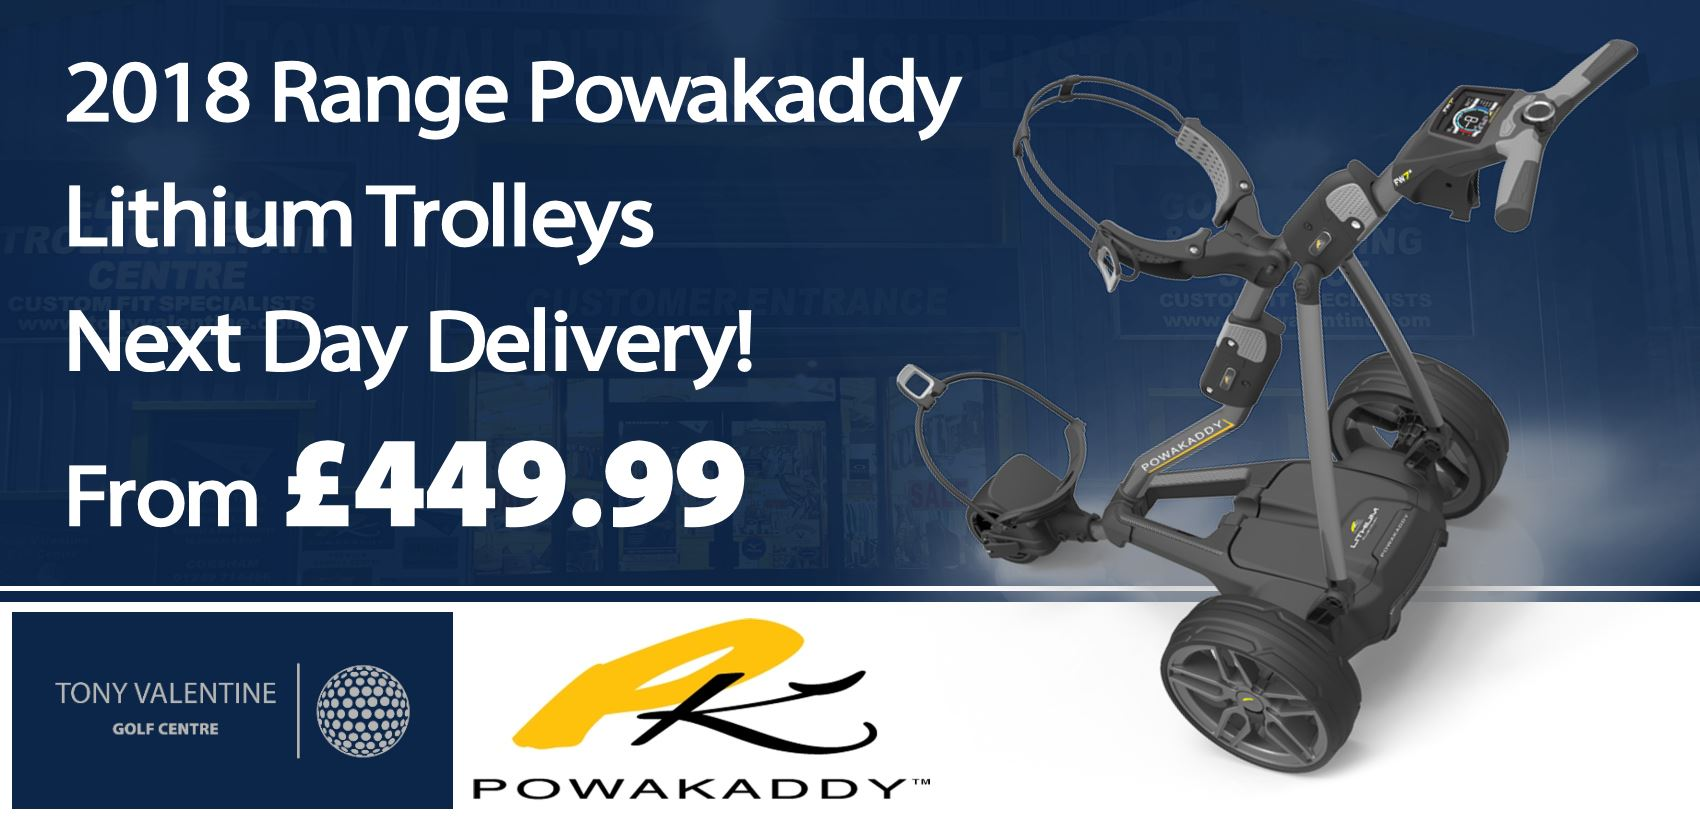 Powakaddy Trolleys